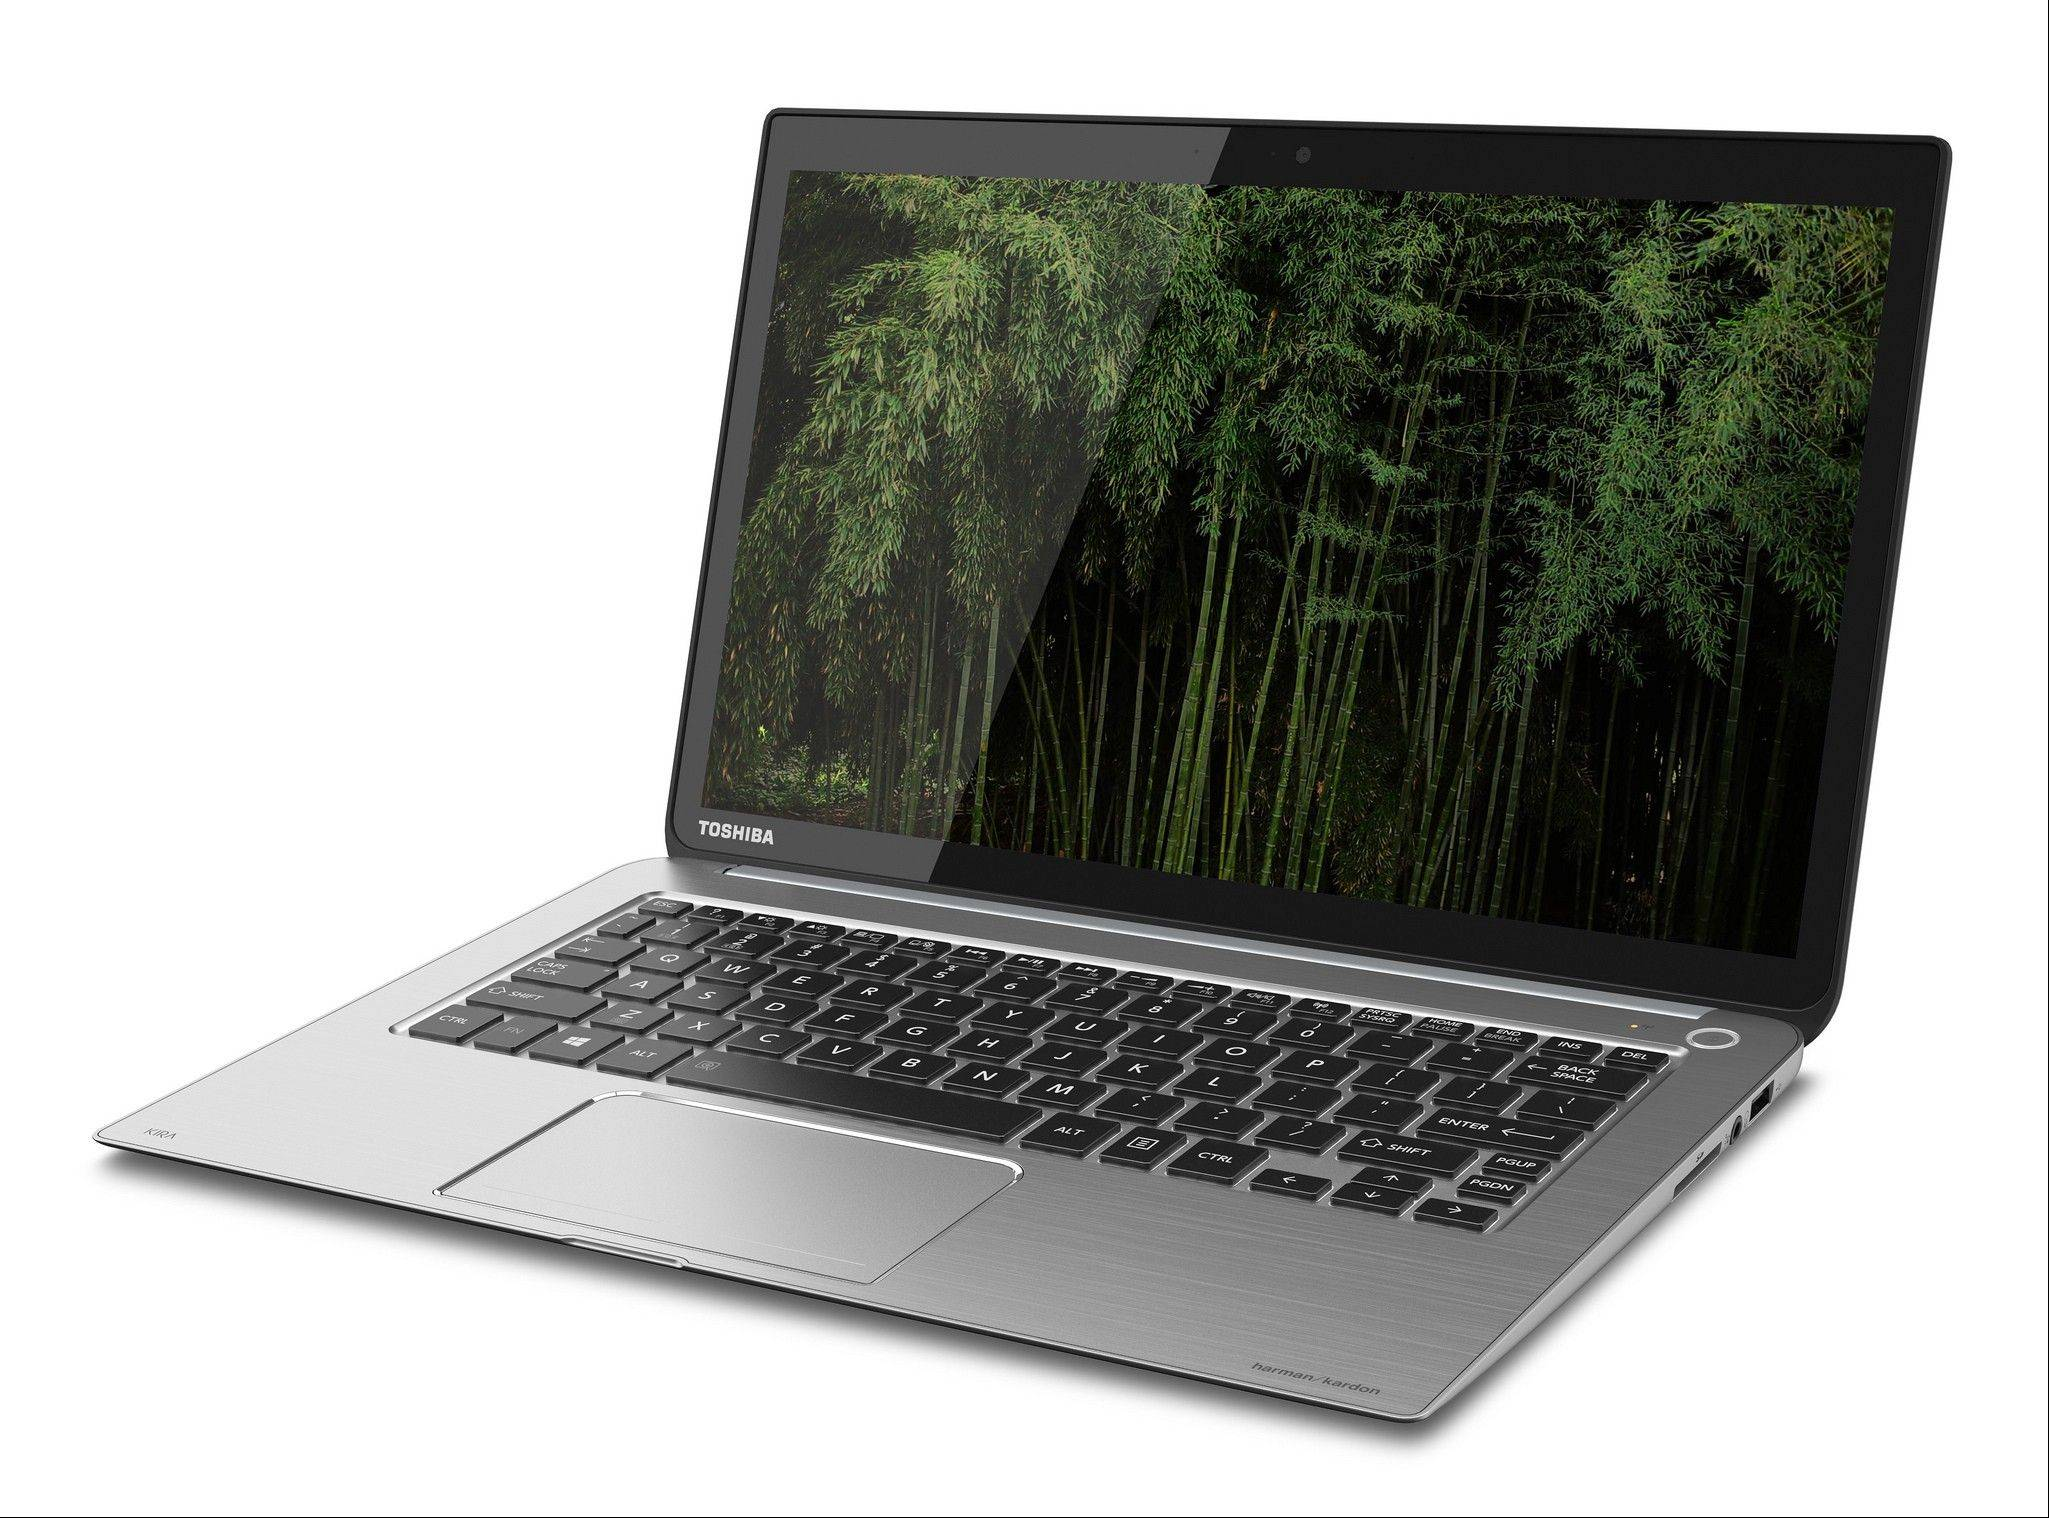 Associated Press/April 16, 2013The Toshiba Kirabook, a newly released laptop line with a Retina-level display.